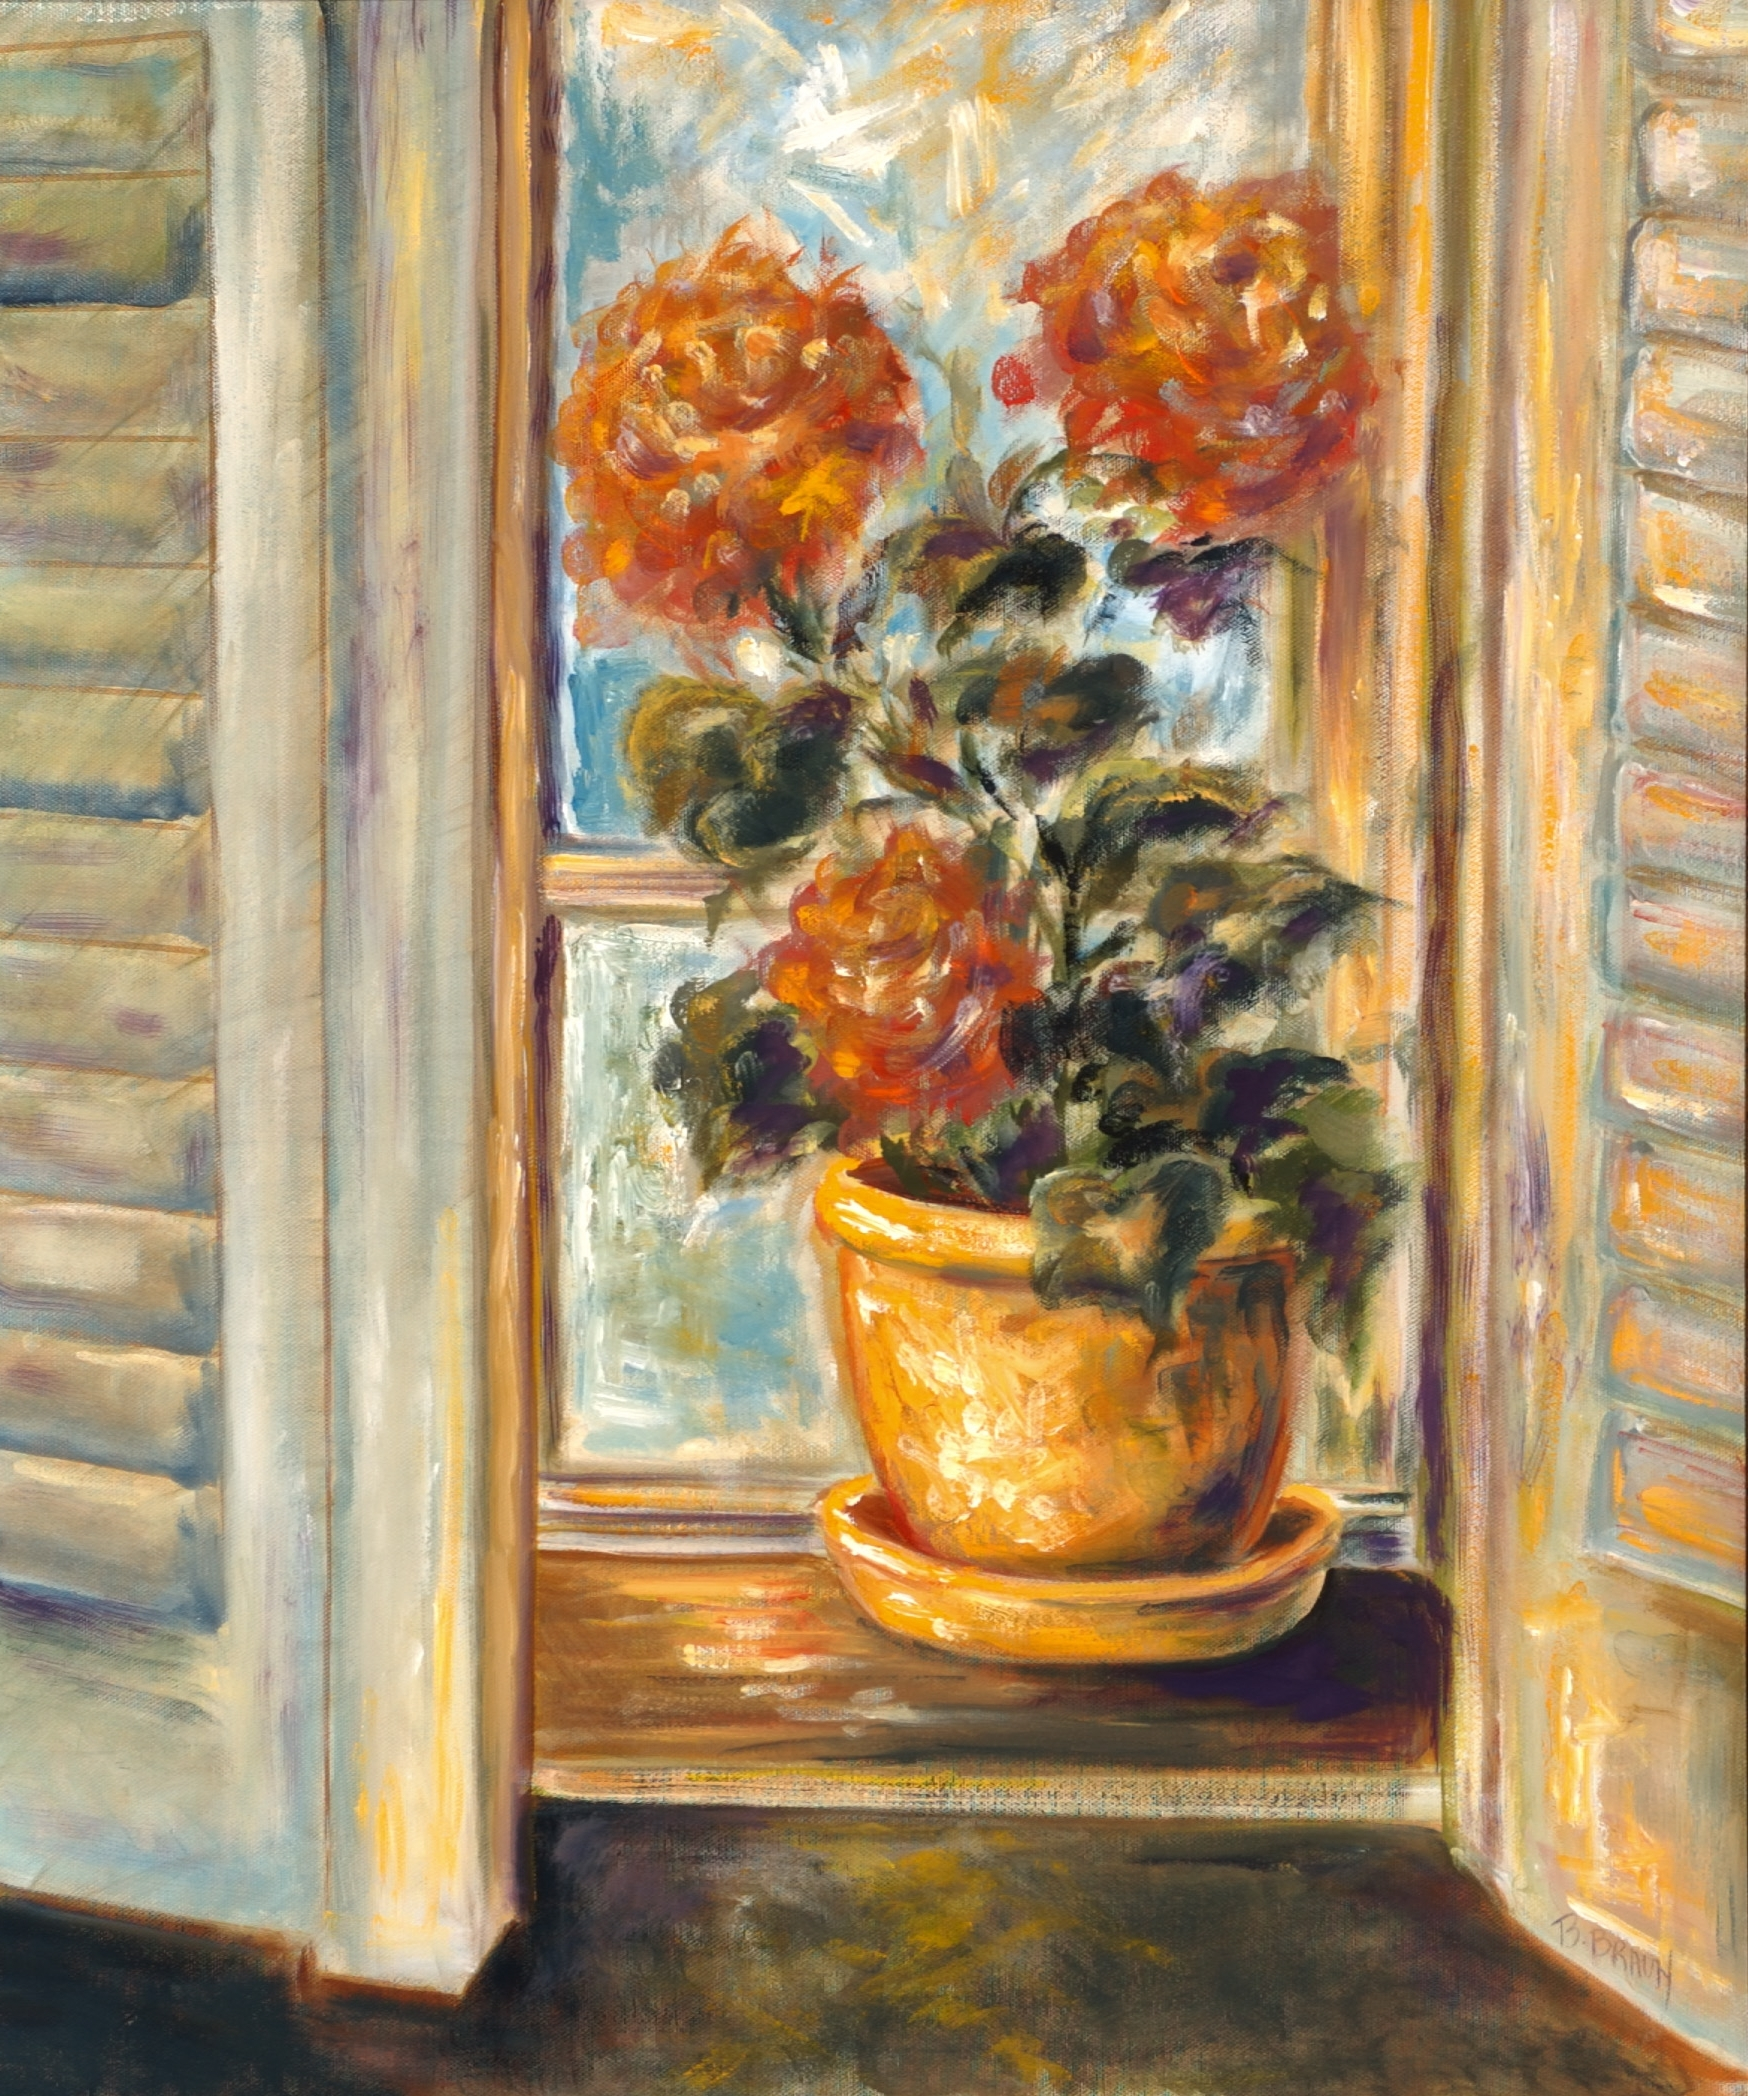 IN THE WINDOW - SOLD